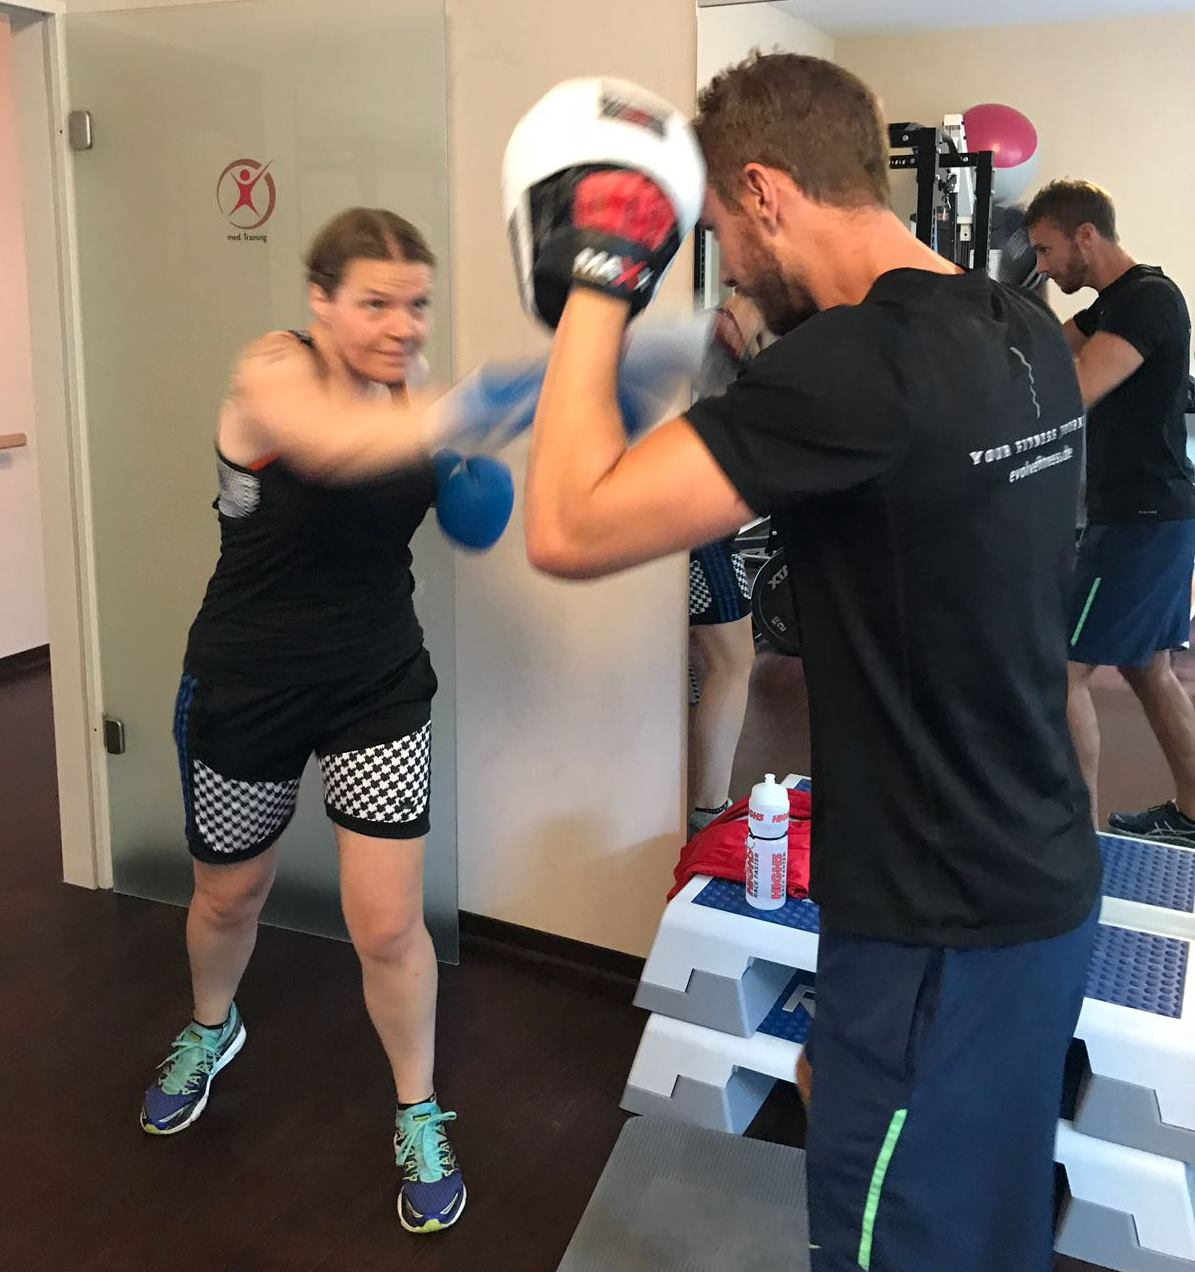 Rebecca and Neil go a few rounds! - photo: Evolve Fitness